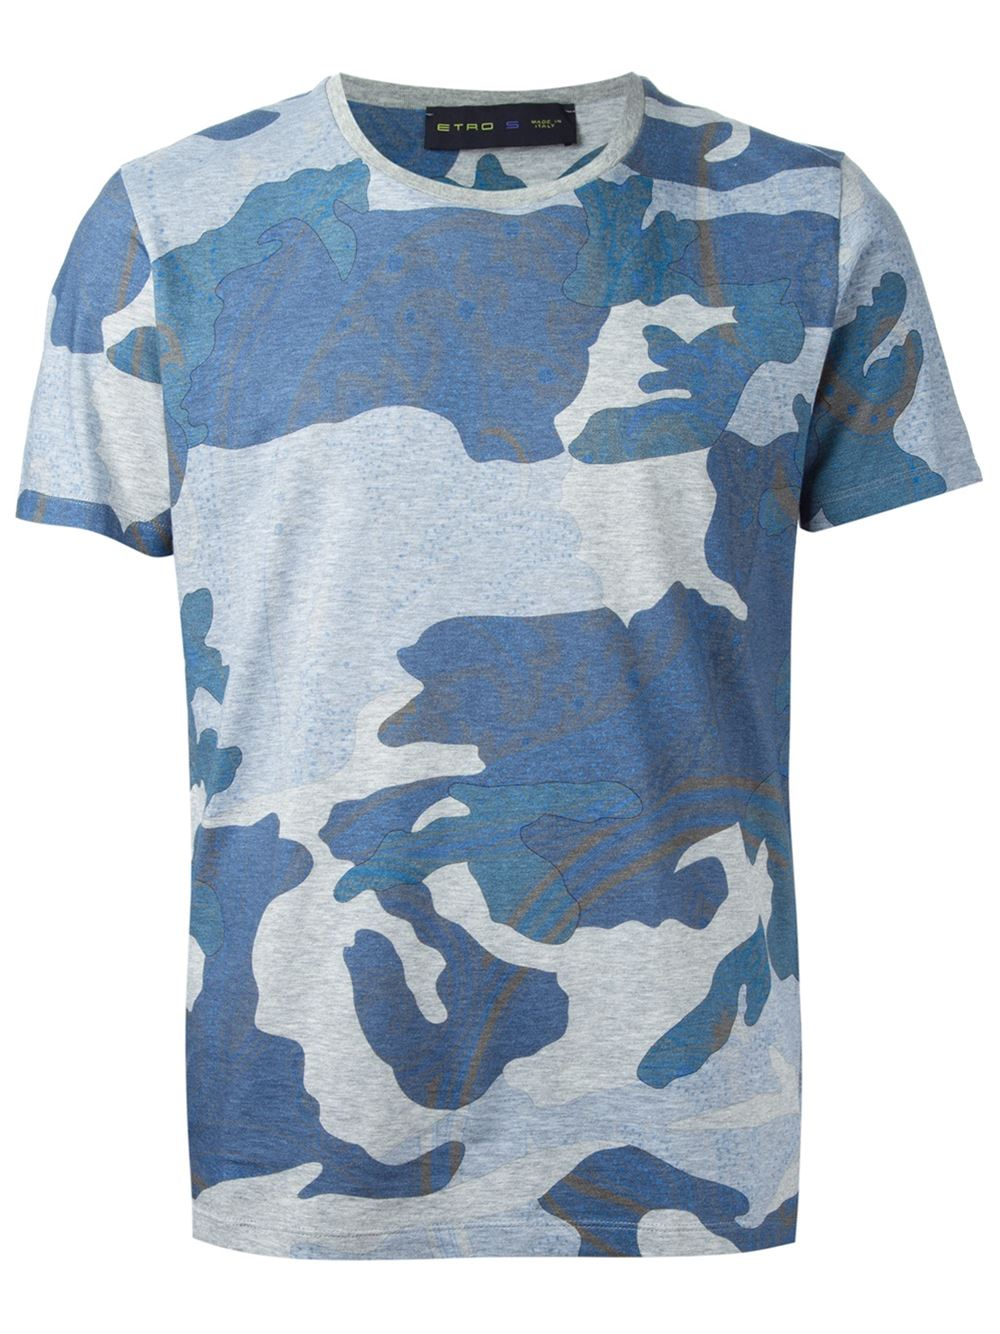 75ec757e Etro Camouflage T-Shirt in Blue for Men - Lyst